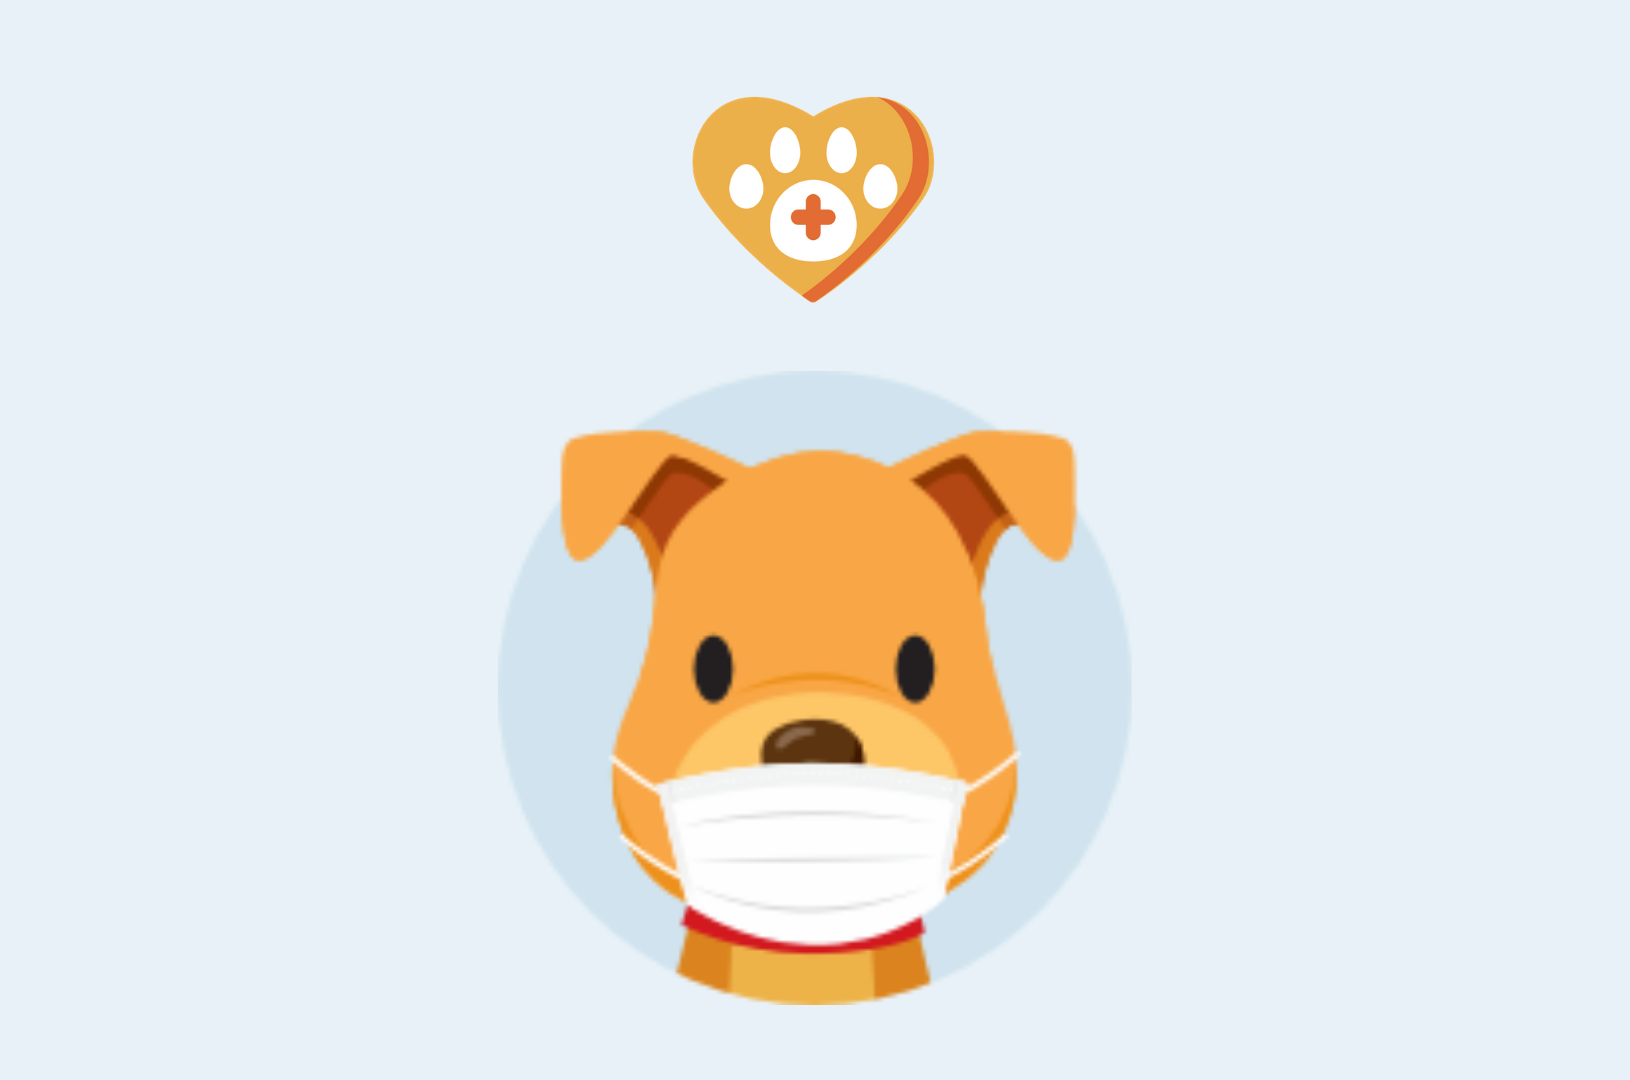 Pawlicy Retriever: Send patients a free tool to compare pet insurance quotes across leading providers.